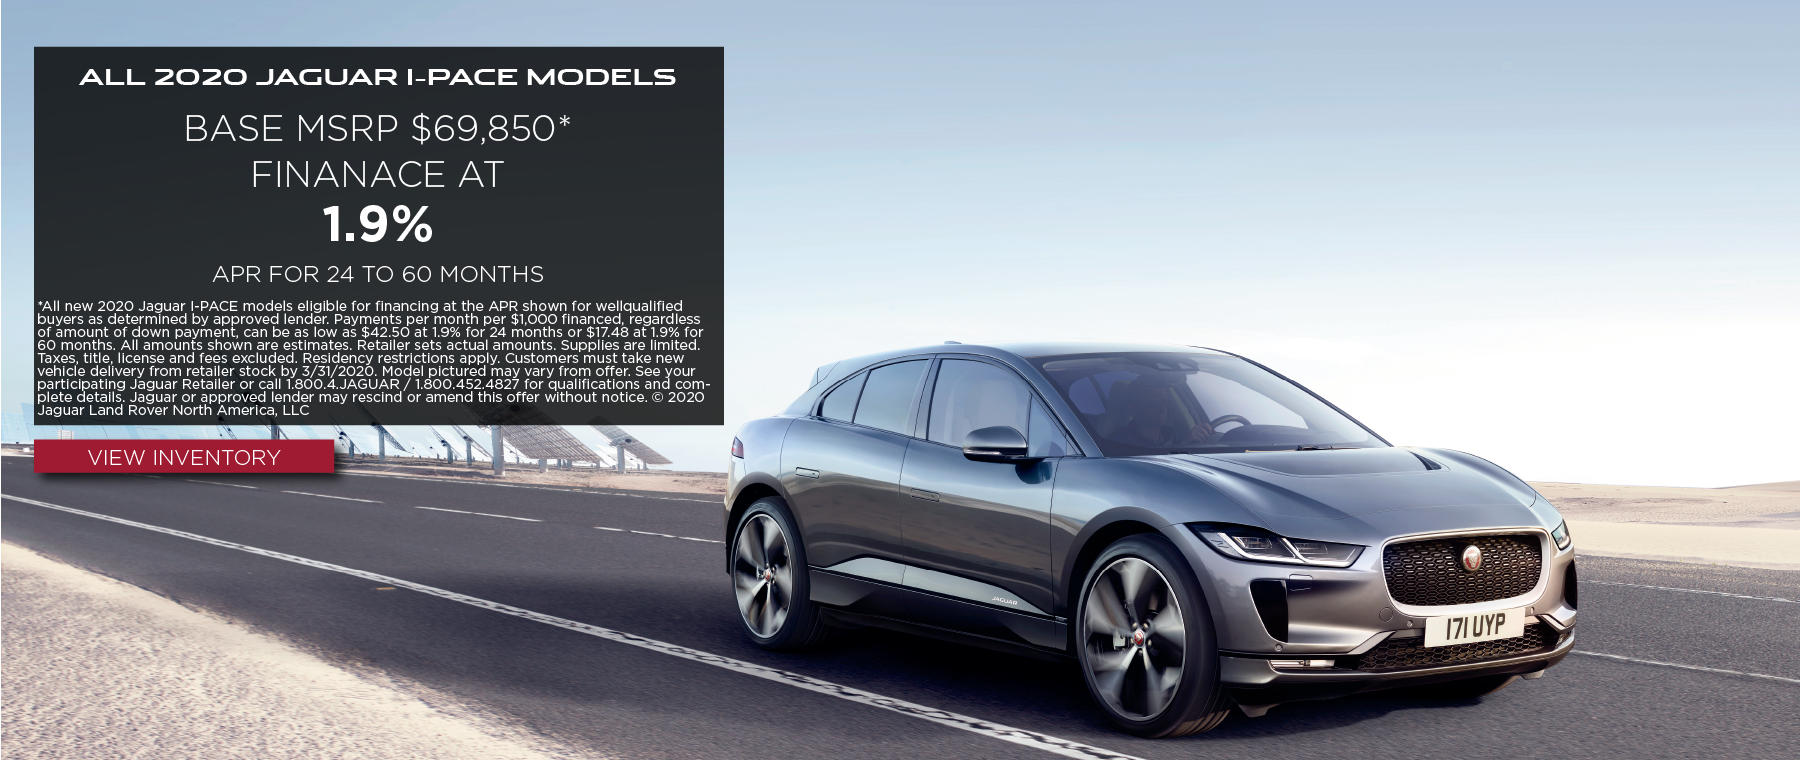 ALL 2020 JAGUAR I-PACE MODELS_BASE MSRP FROM $69,850_FINANCE AT 1.9% APR FOR 24 TO 60 MONTHS_EXPIRES MARCH 31, 2020_VIEW INVENTORY_GRAY JAGUAR I-PACE DRIVING IN DESERT NEAR SOLAR PANELS